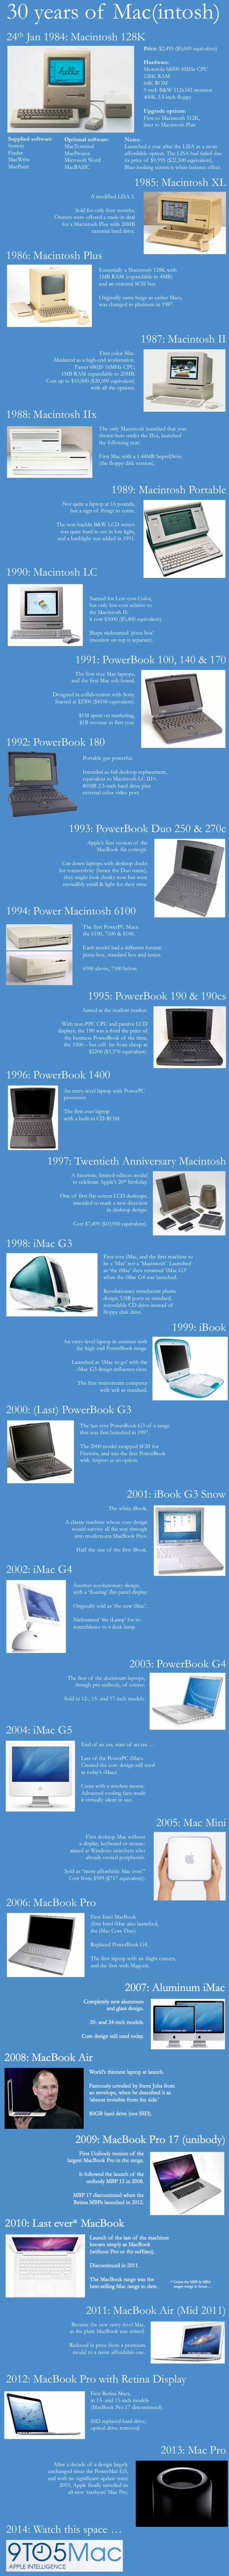 On the Mac's 30th Birthday, Apple Does Some Horn Tooting